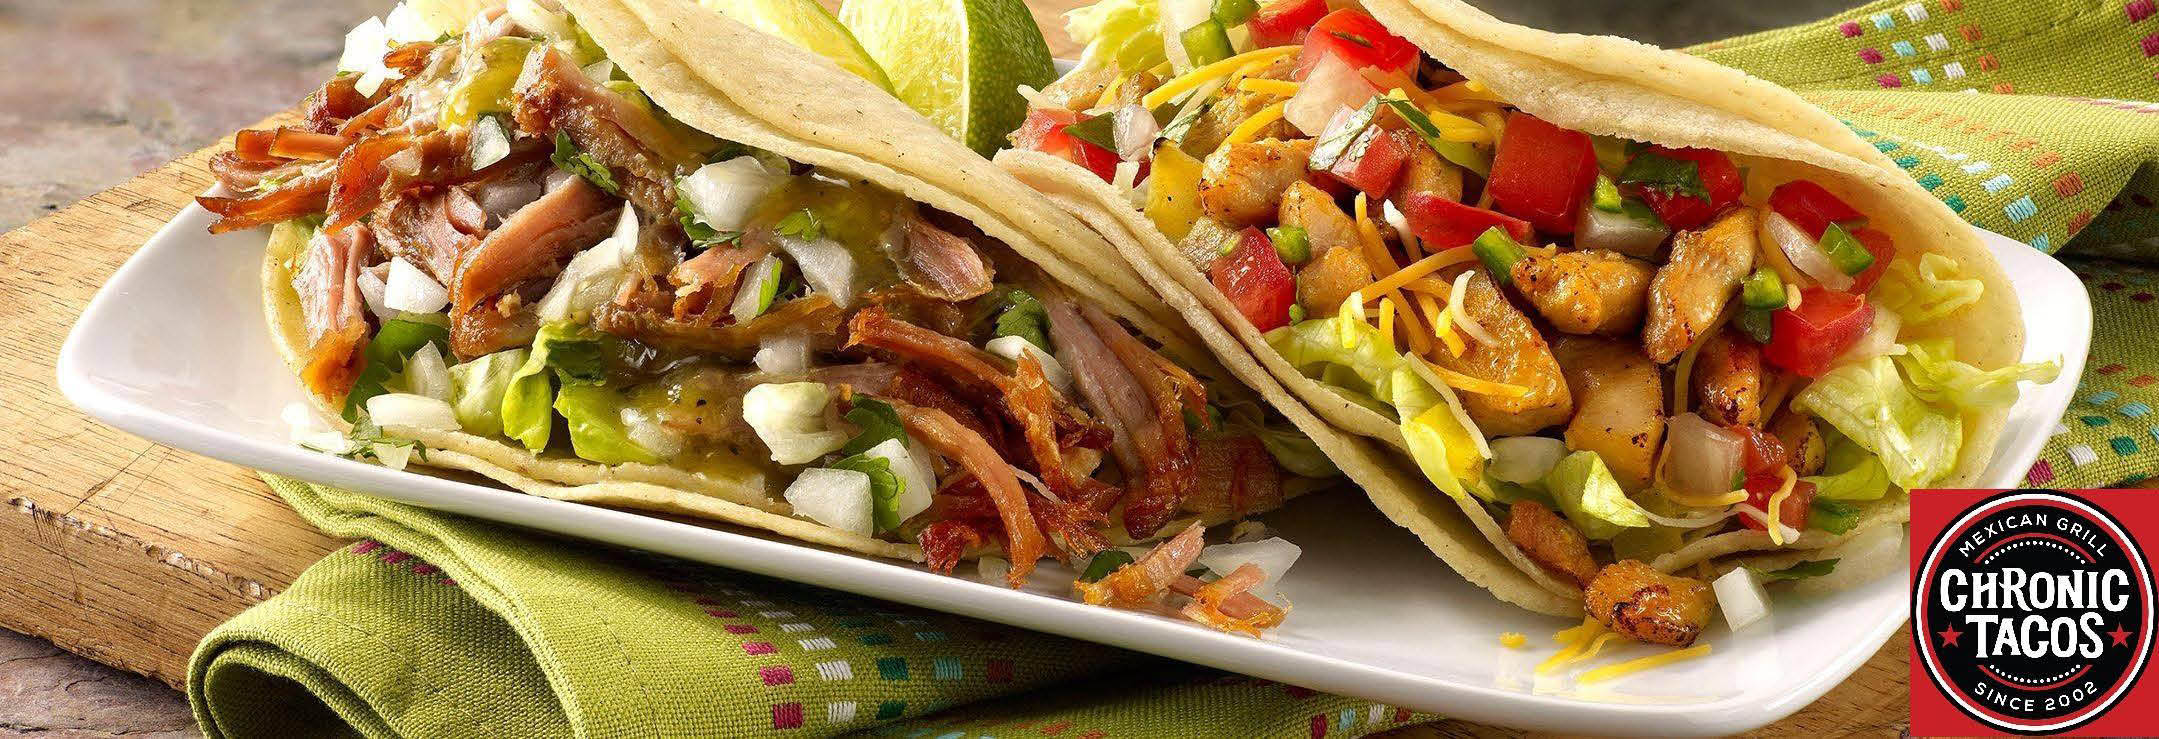 chronic tacos irvine ca mexican food coupons near me